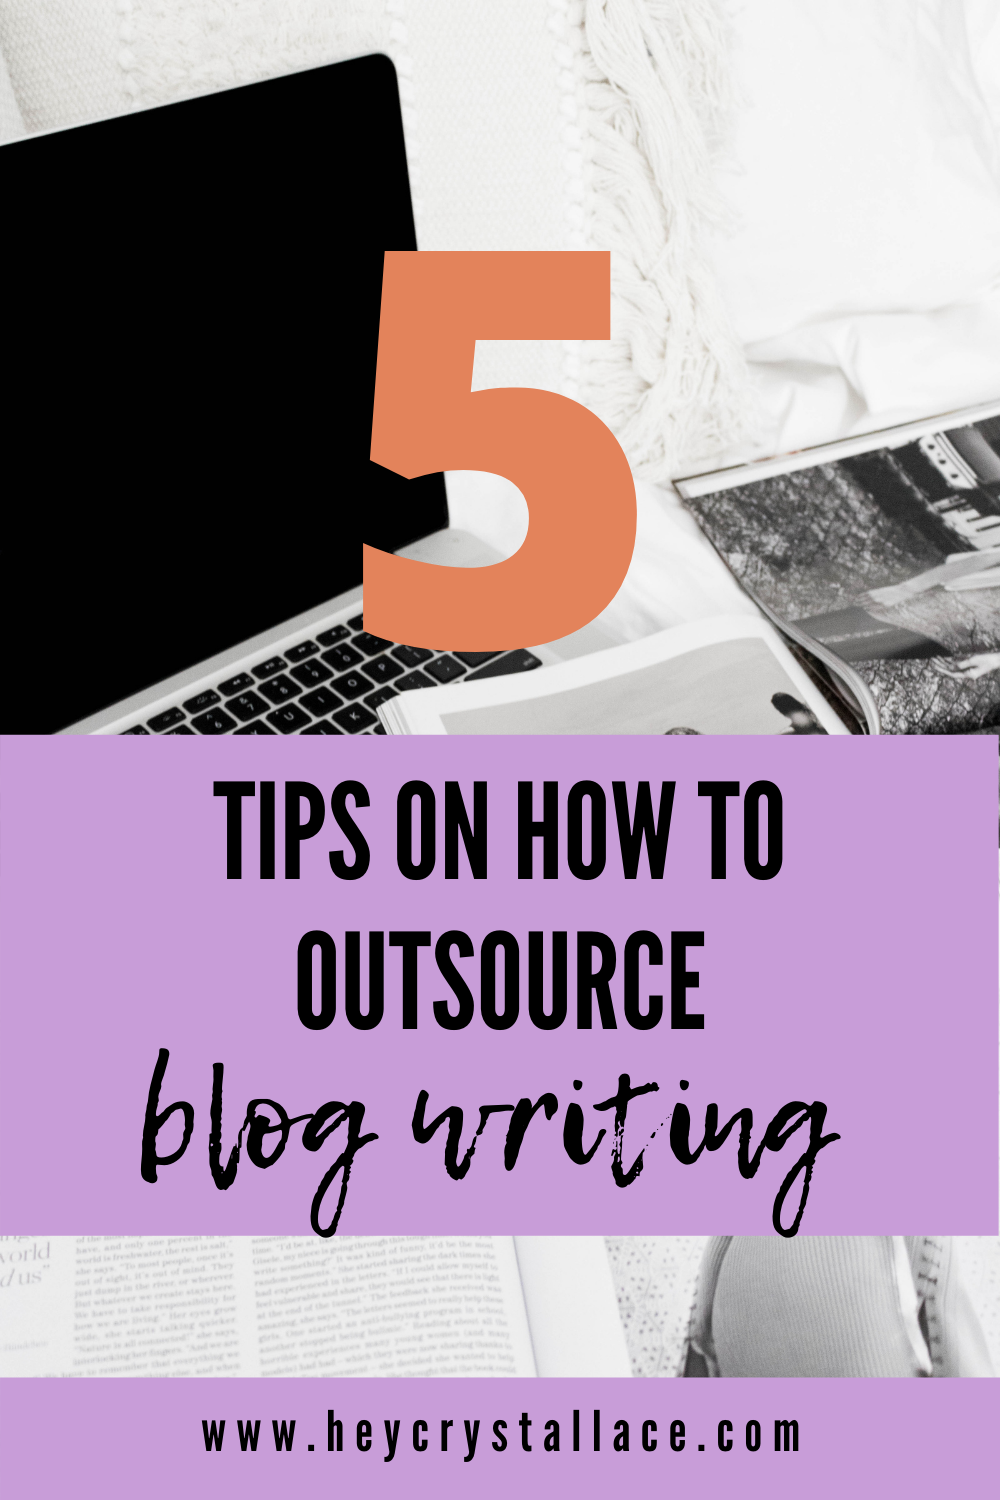 5 Tips On How to Outsource Blog Writing… the Stress Free Way